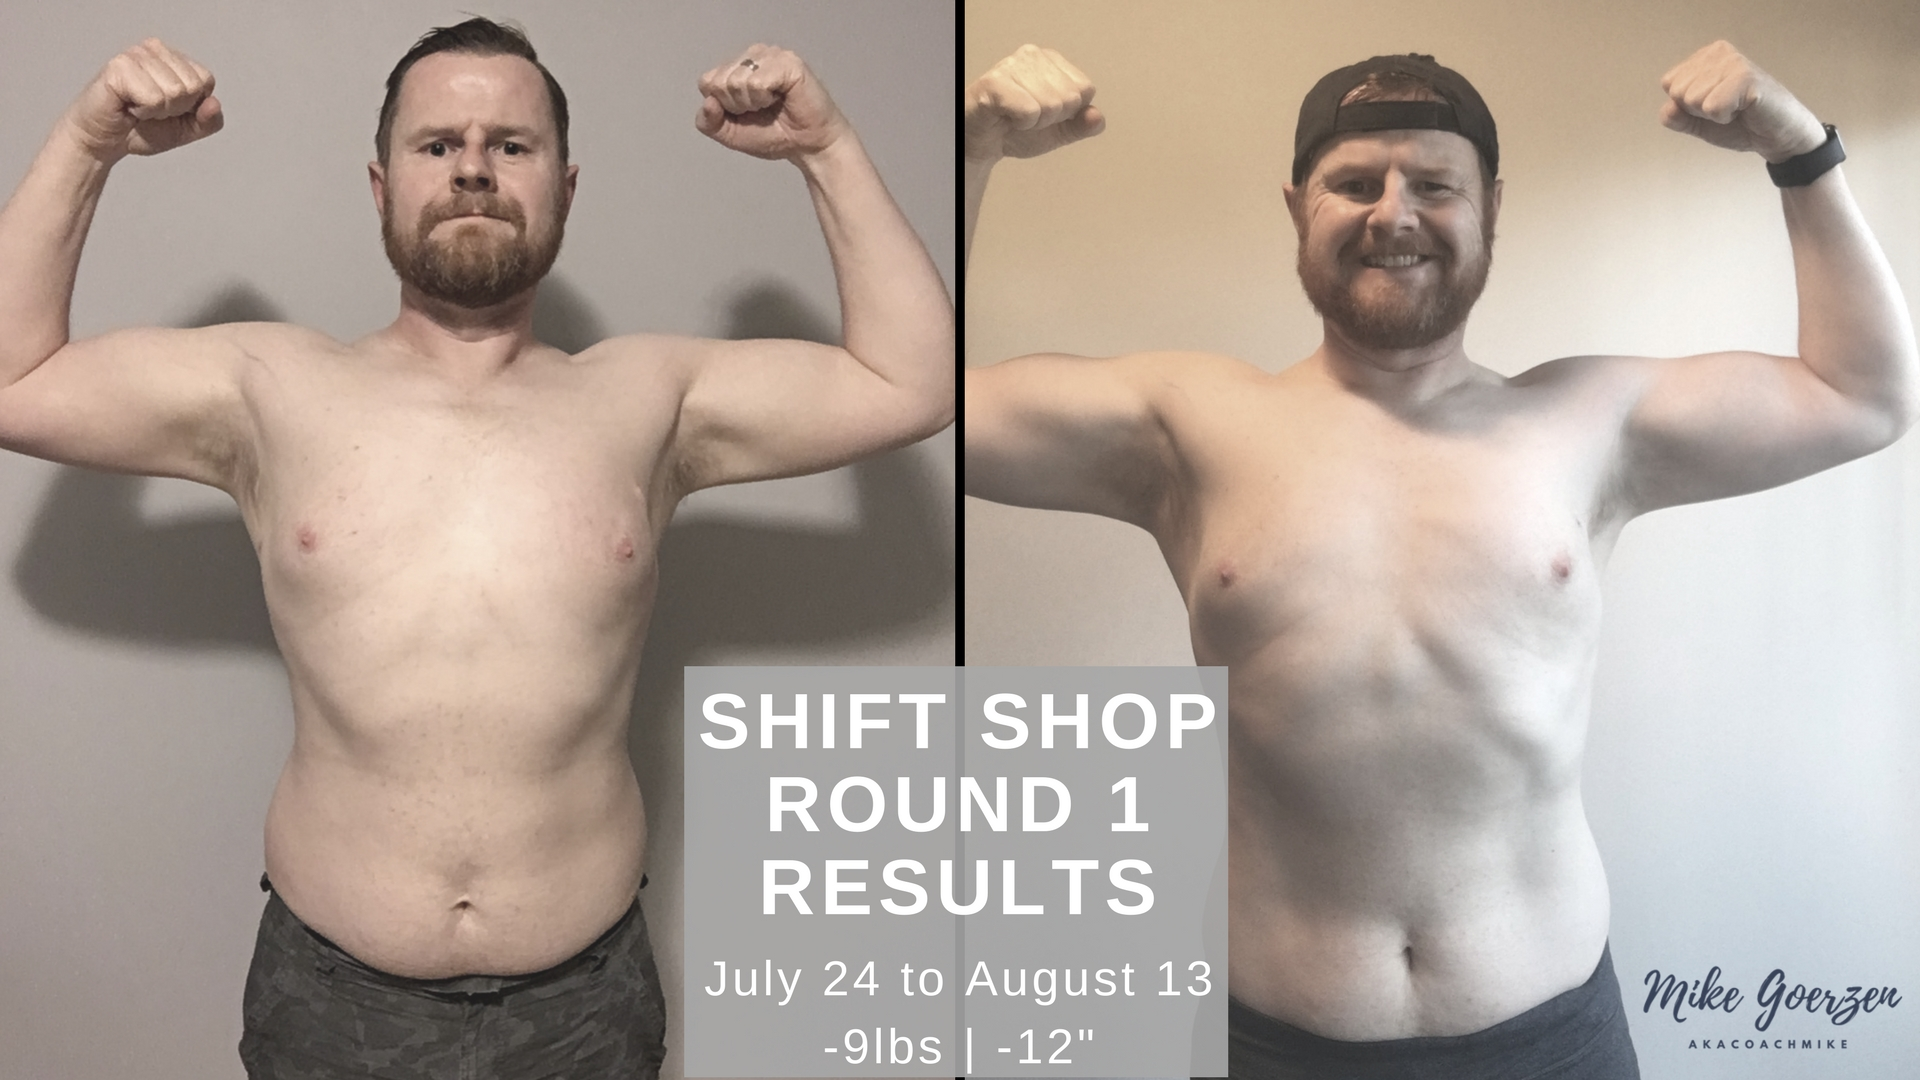 Shift Shop Results Round 1